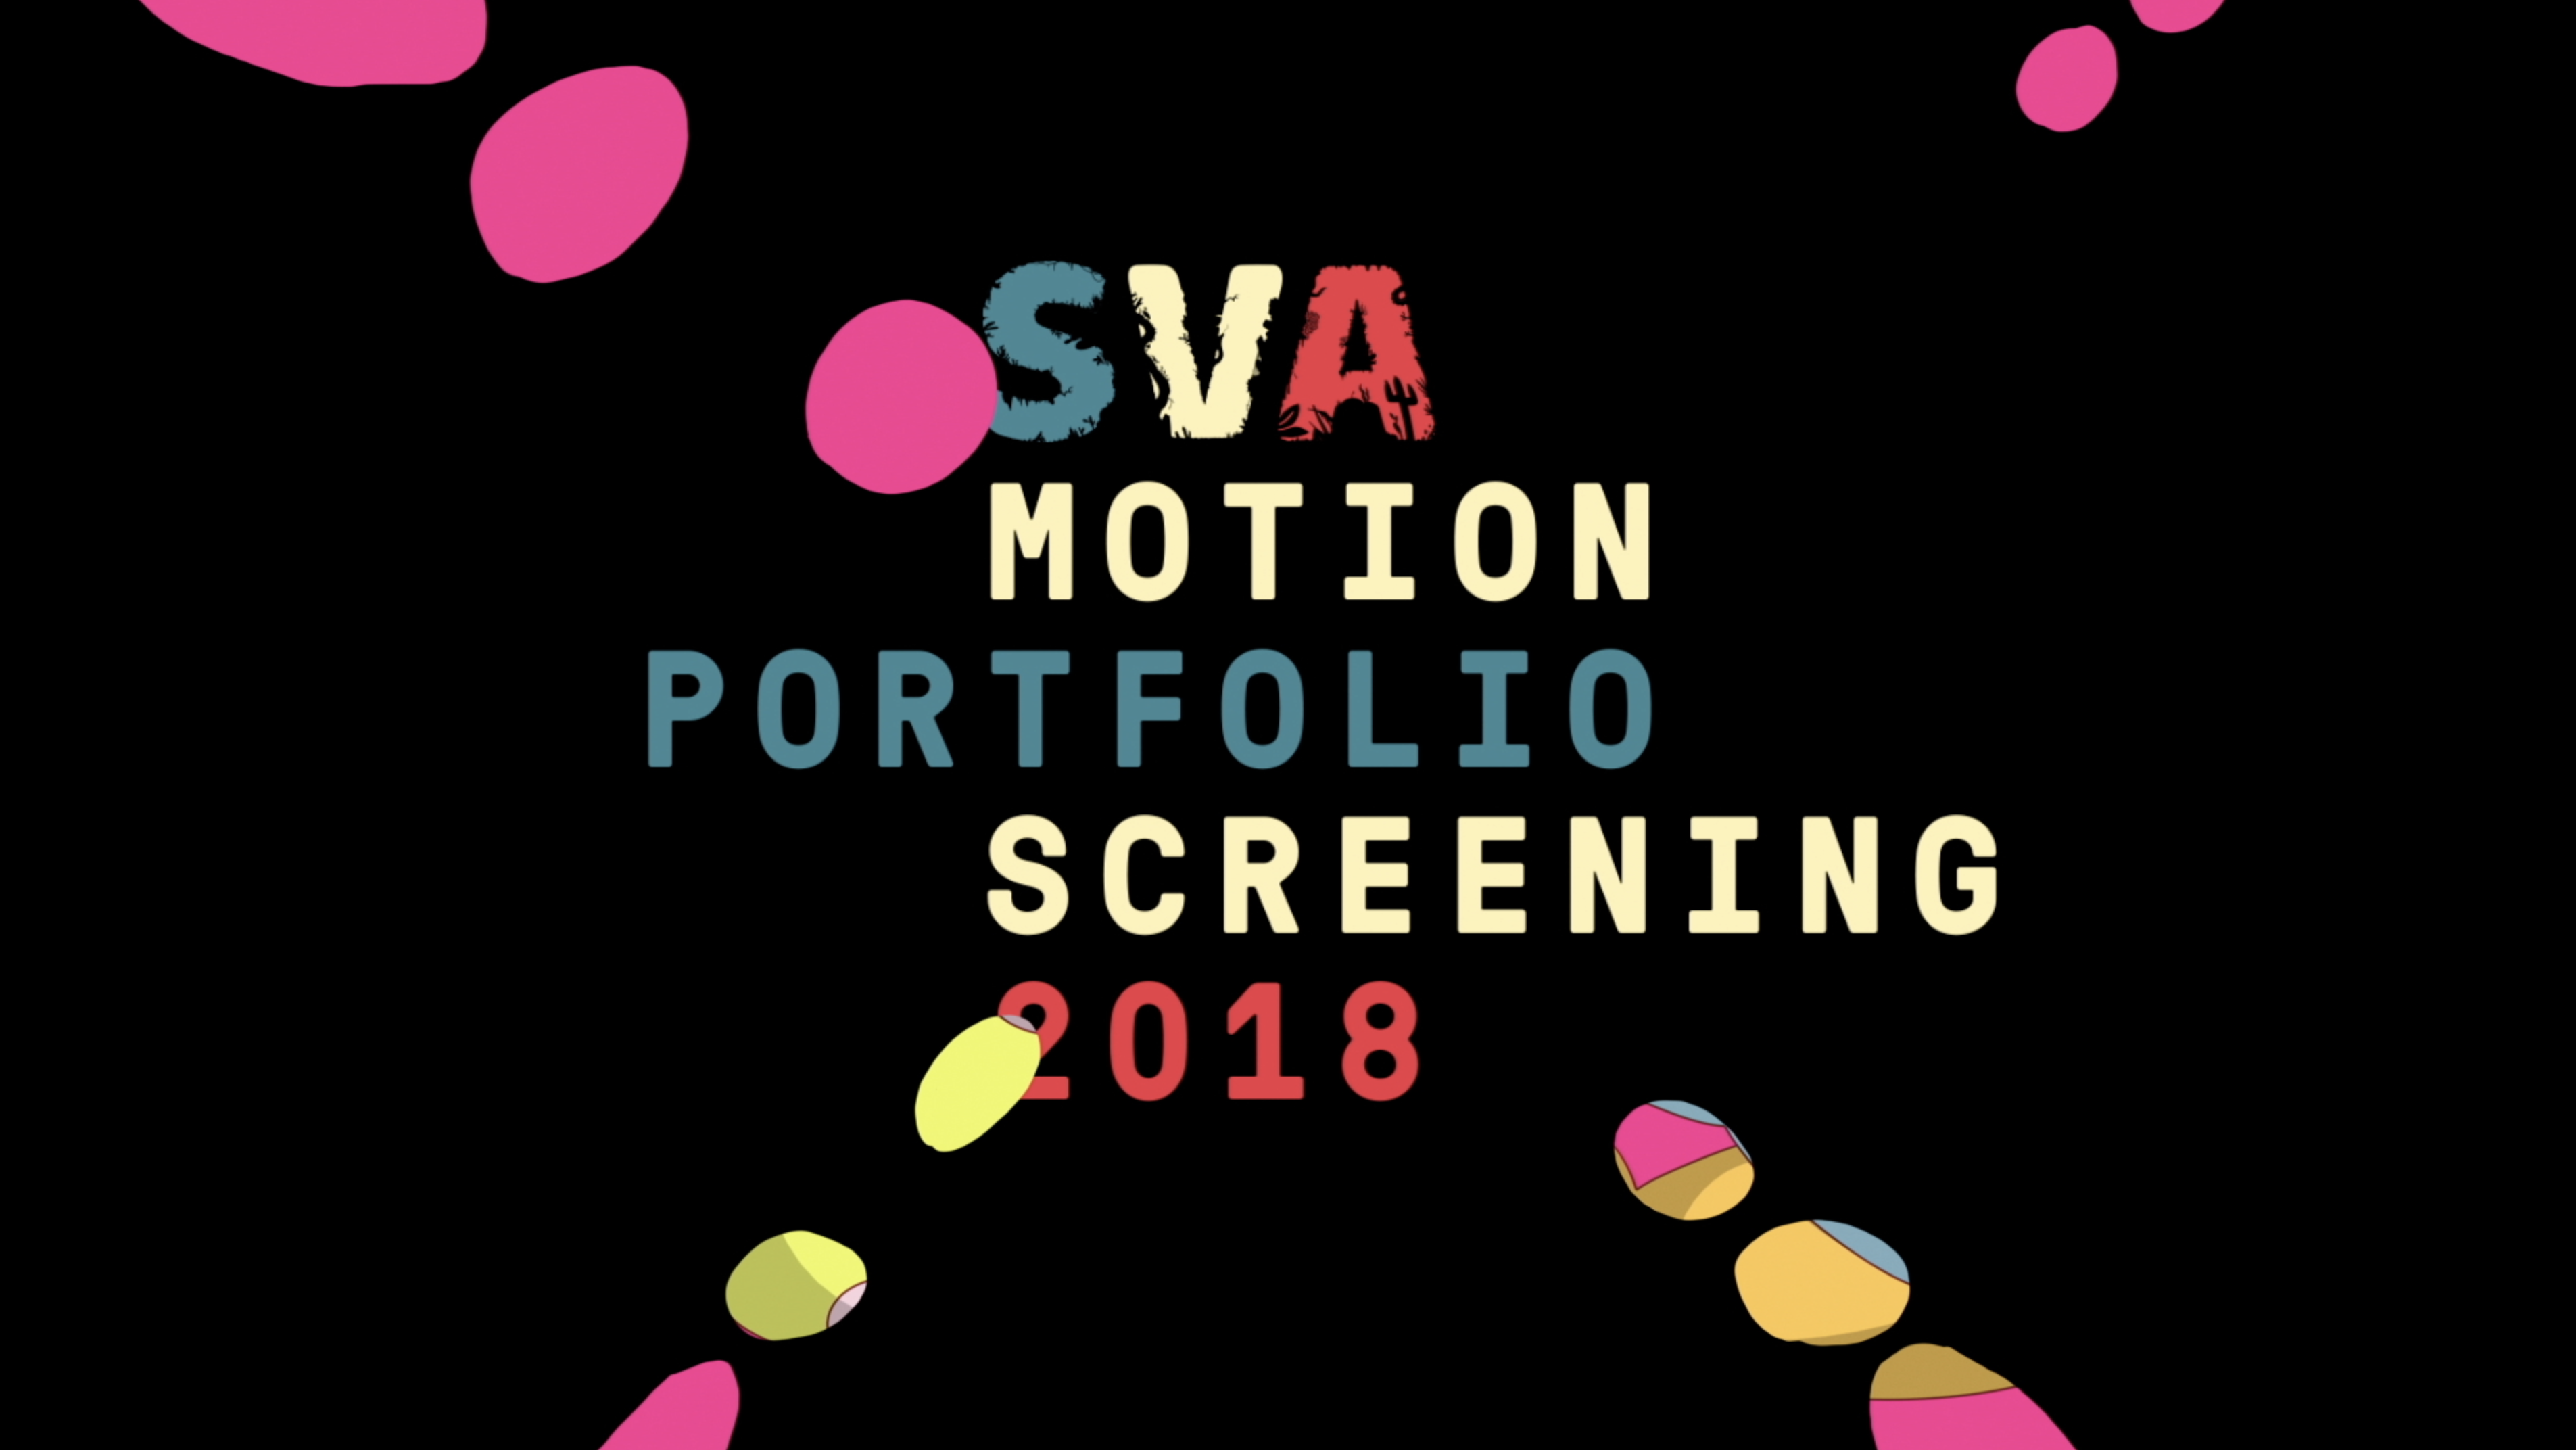 SVA Motion Graphics Portfolio Screening 2018